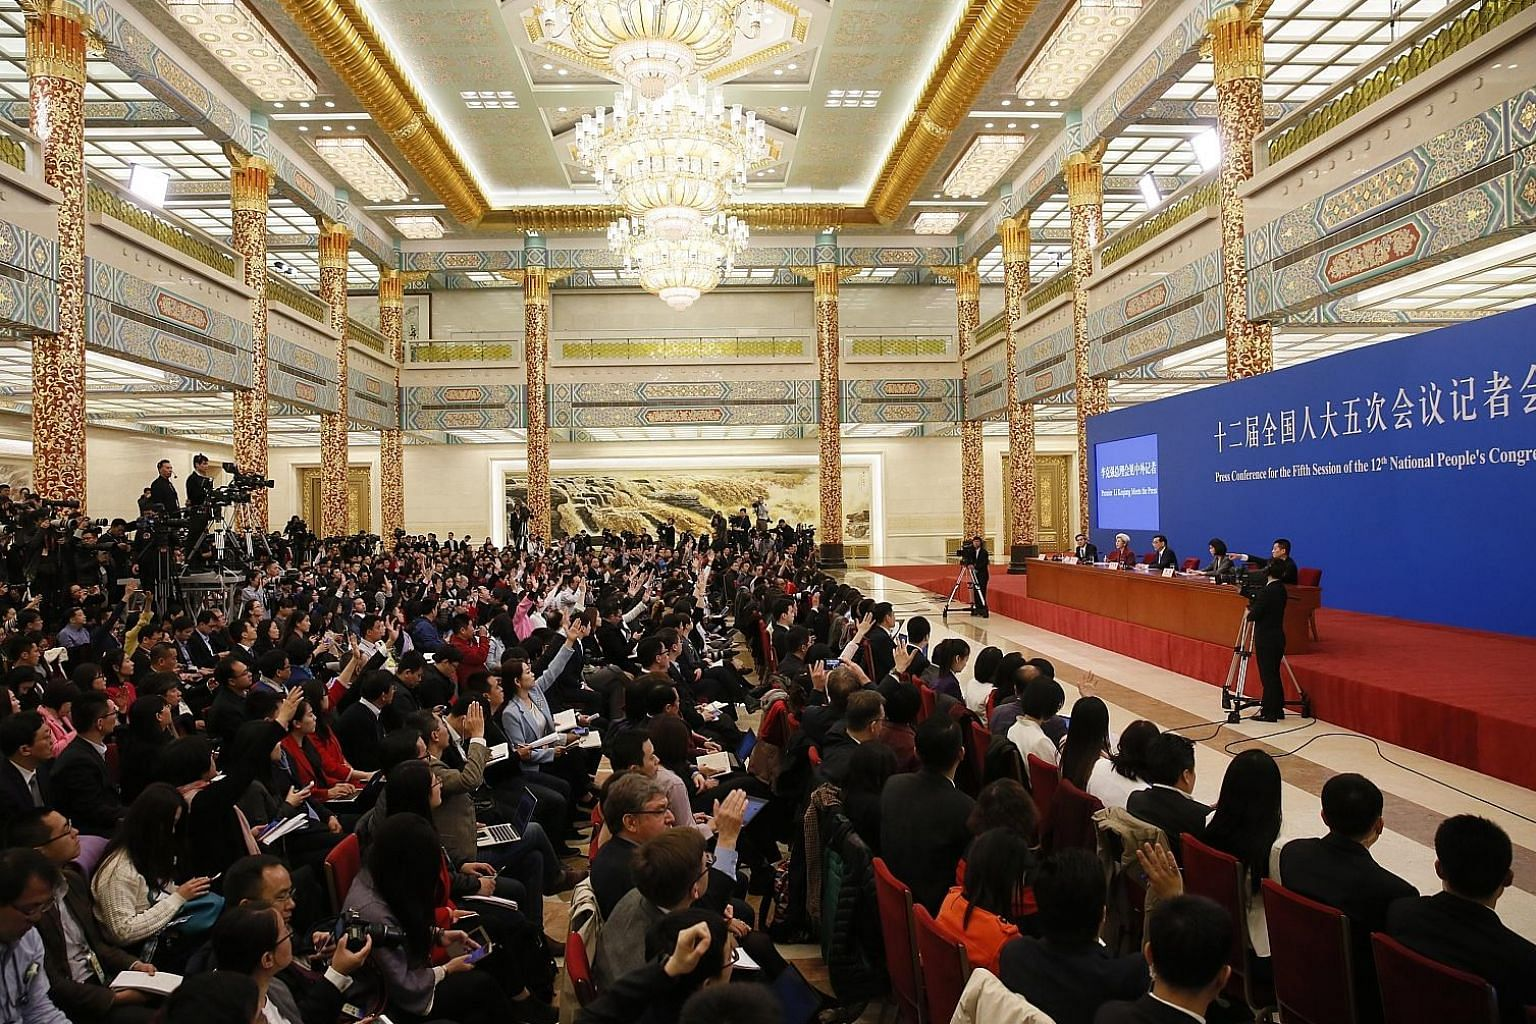 Chinese Premier Li holding a press conference after the fifth session of the 12th National People's Congress in Beijing last week, where he was reassuring on ties with Asean. But the writer says the jury is still out on whether China will walk the ta